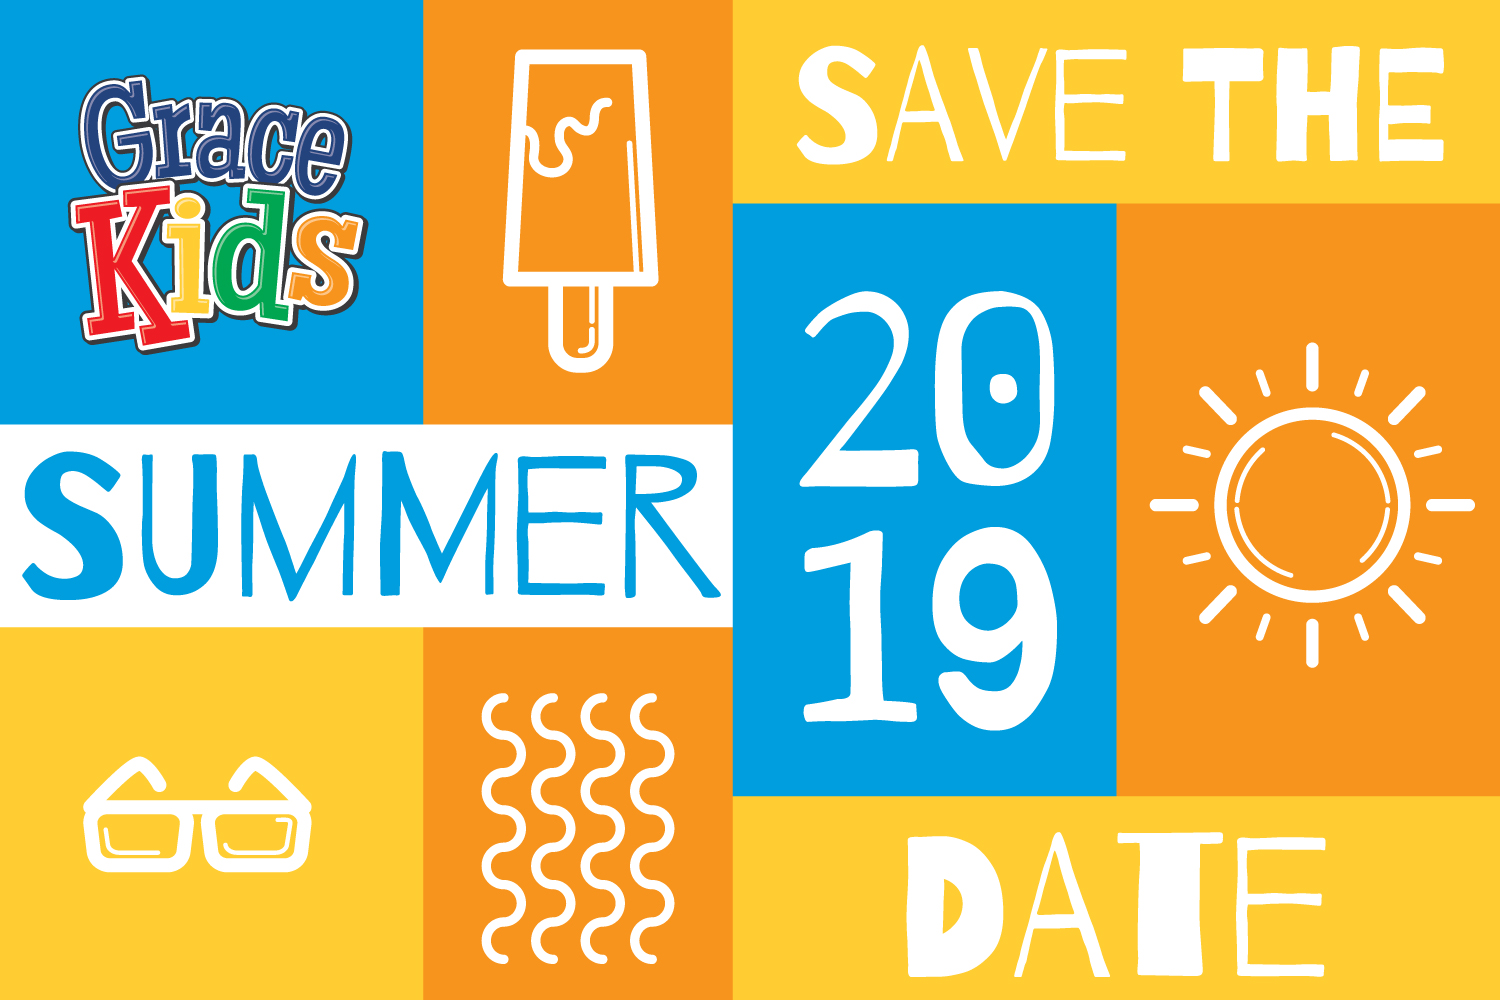 Summer-Save-the-date_front.jpg